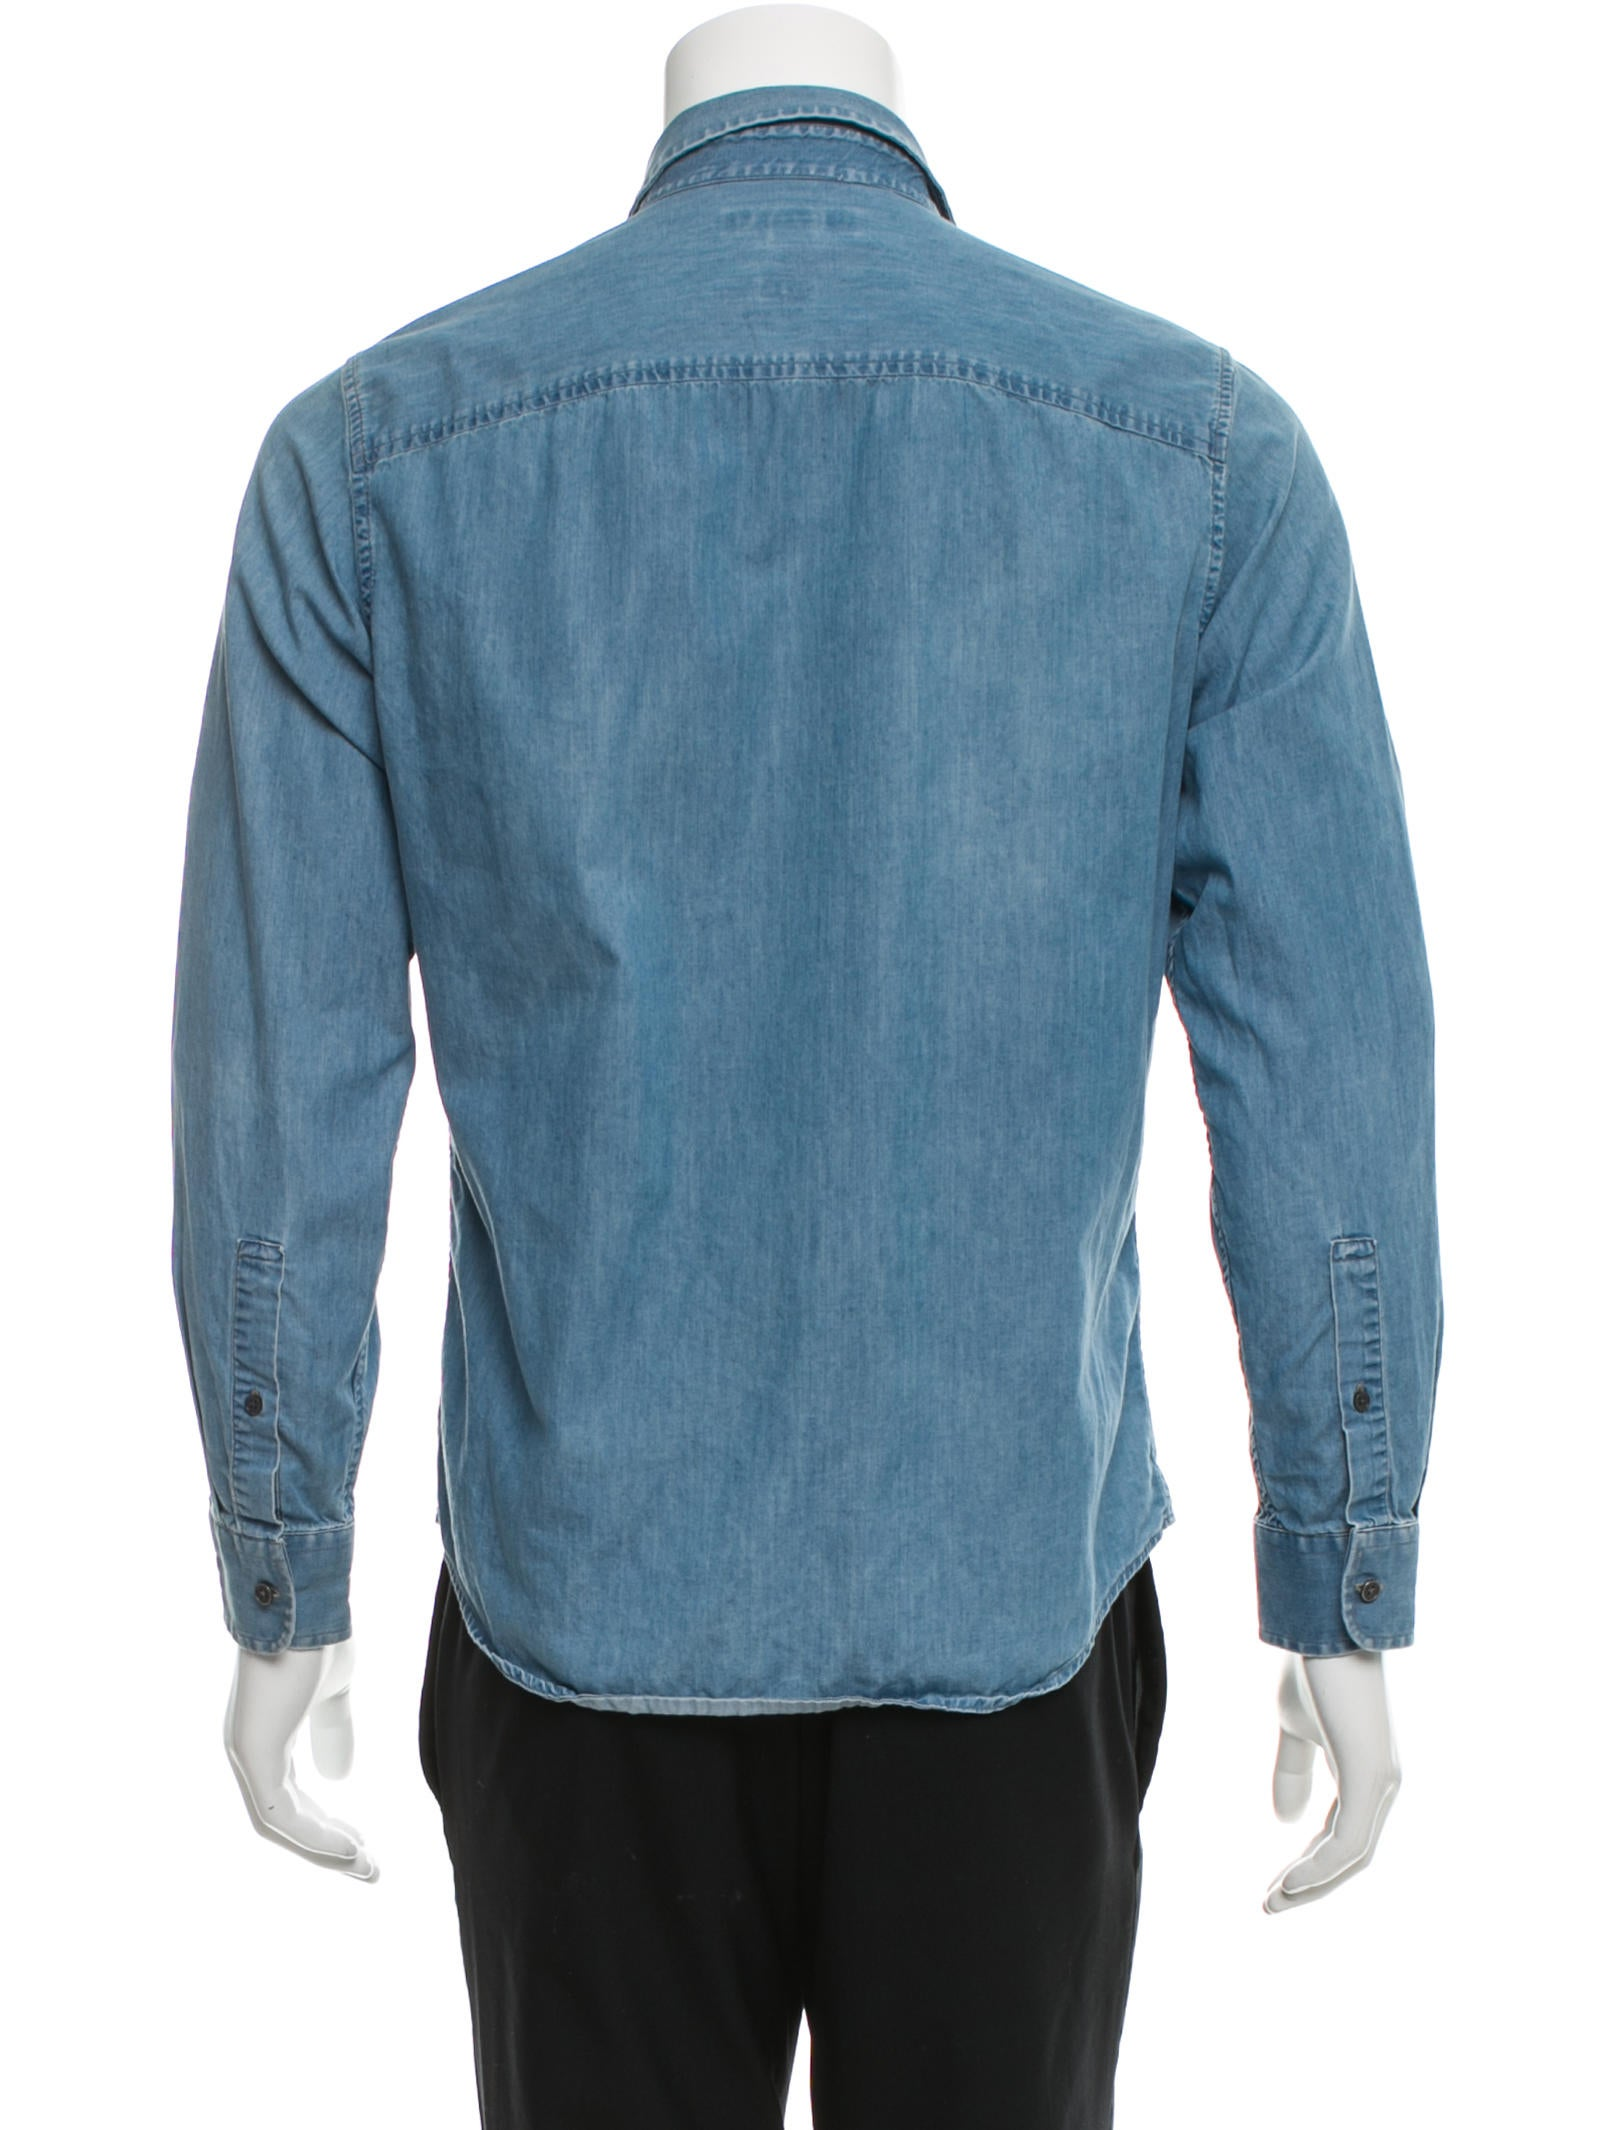 Michael kors tailored fit denim shirt clothing for Best online tailored shirts